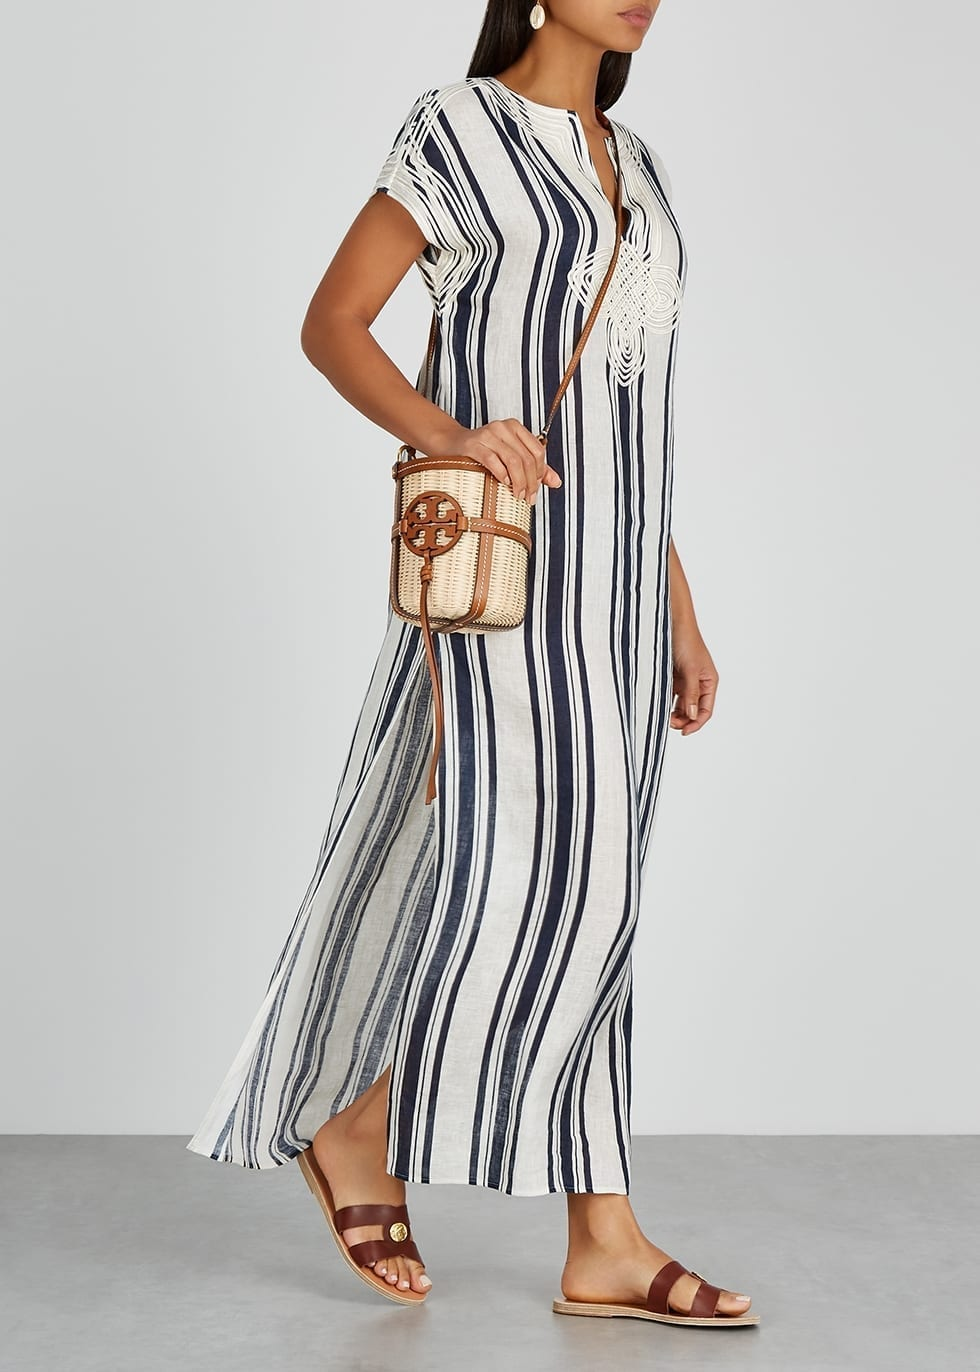 TORY BURCH Striped Linen Maxi Dress